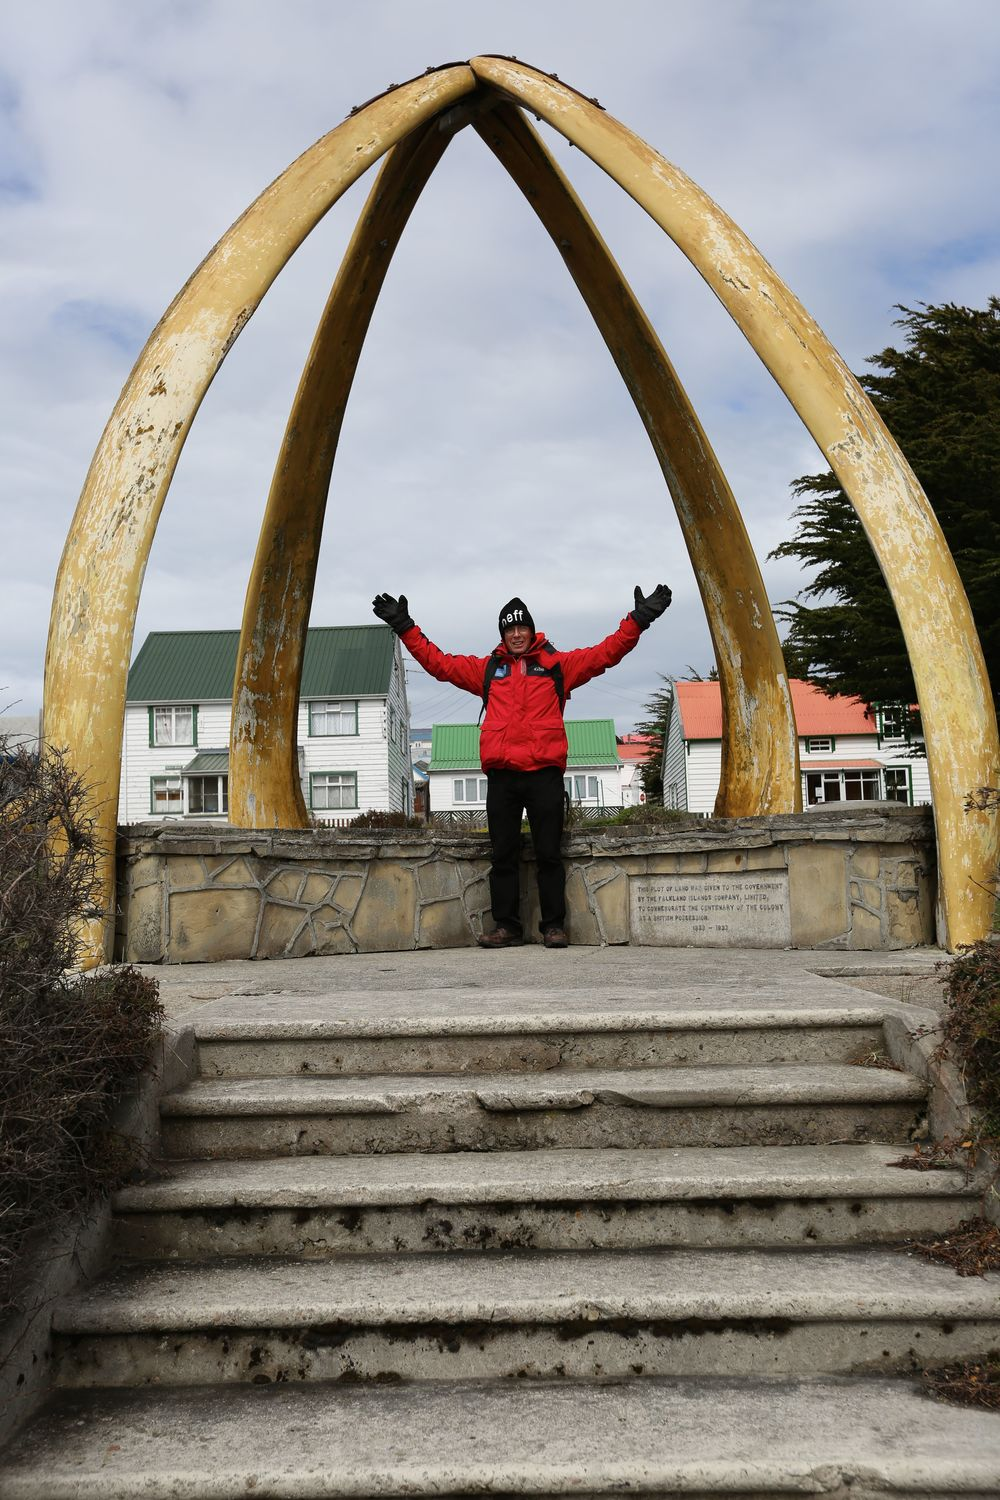 Perhaps the most striking sight in the center of Stanley is an arch that was made in 1933 from the jawbones of two blue whales to celebrate a century of British rule in the Falklands. We would be exploring the amazing world of whales and the horrific history of whaling in the Antarctic in the days ahead as we sailed on toward South Georgia Island.